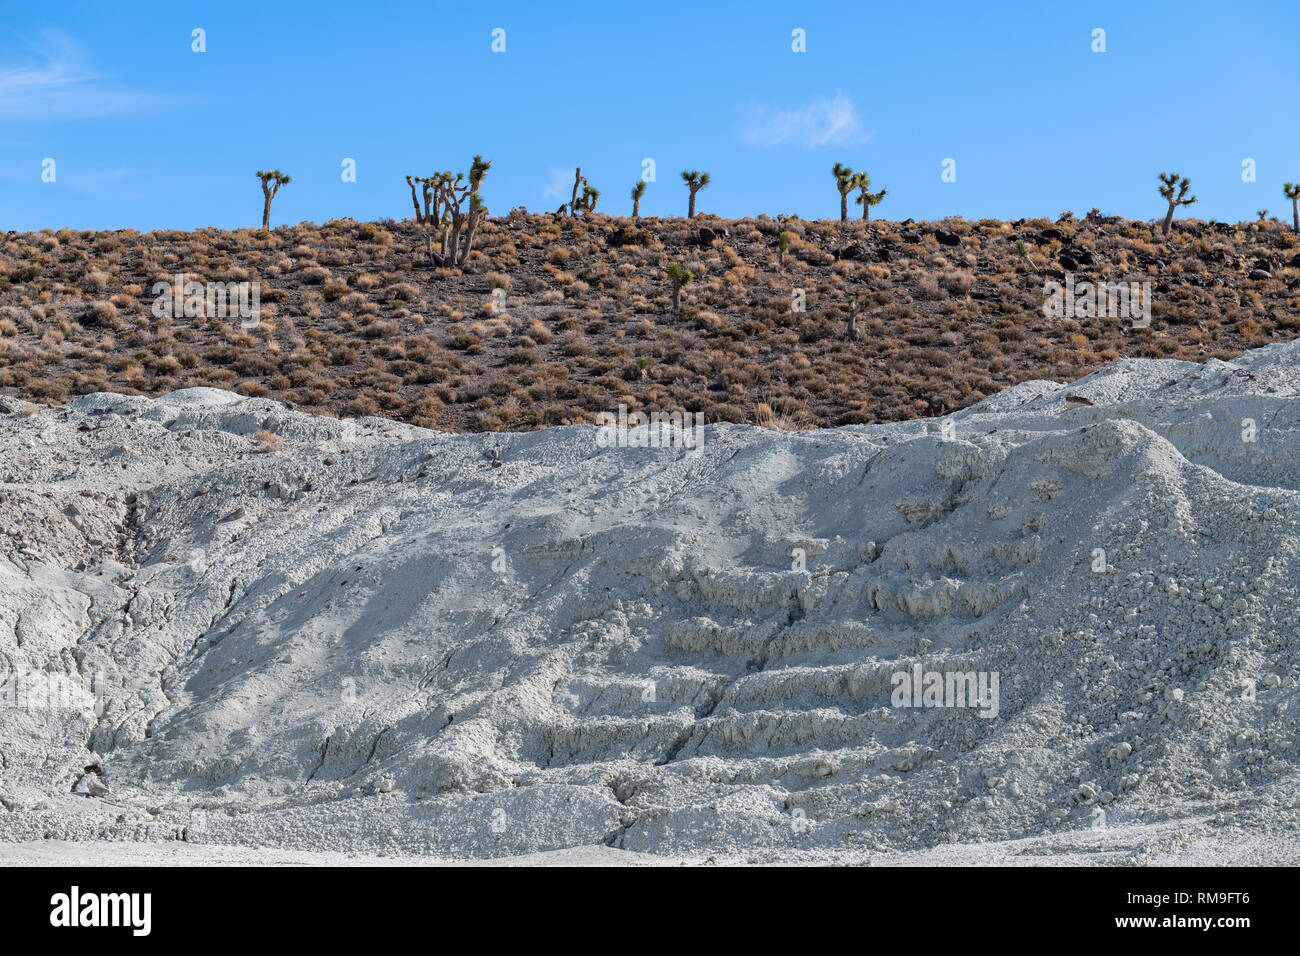 Joshua trees growing near a talc mine in the California desert, USA - Stock Image